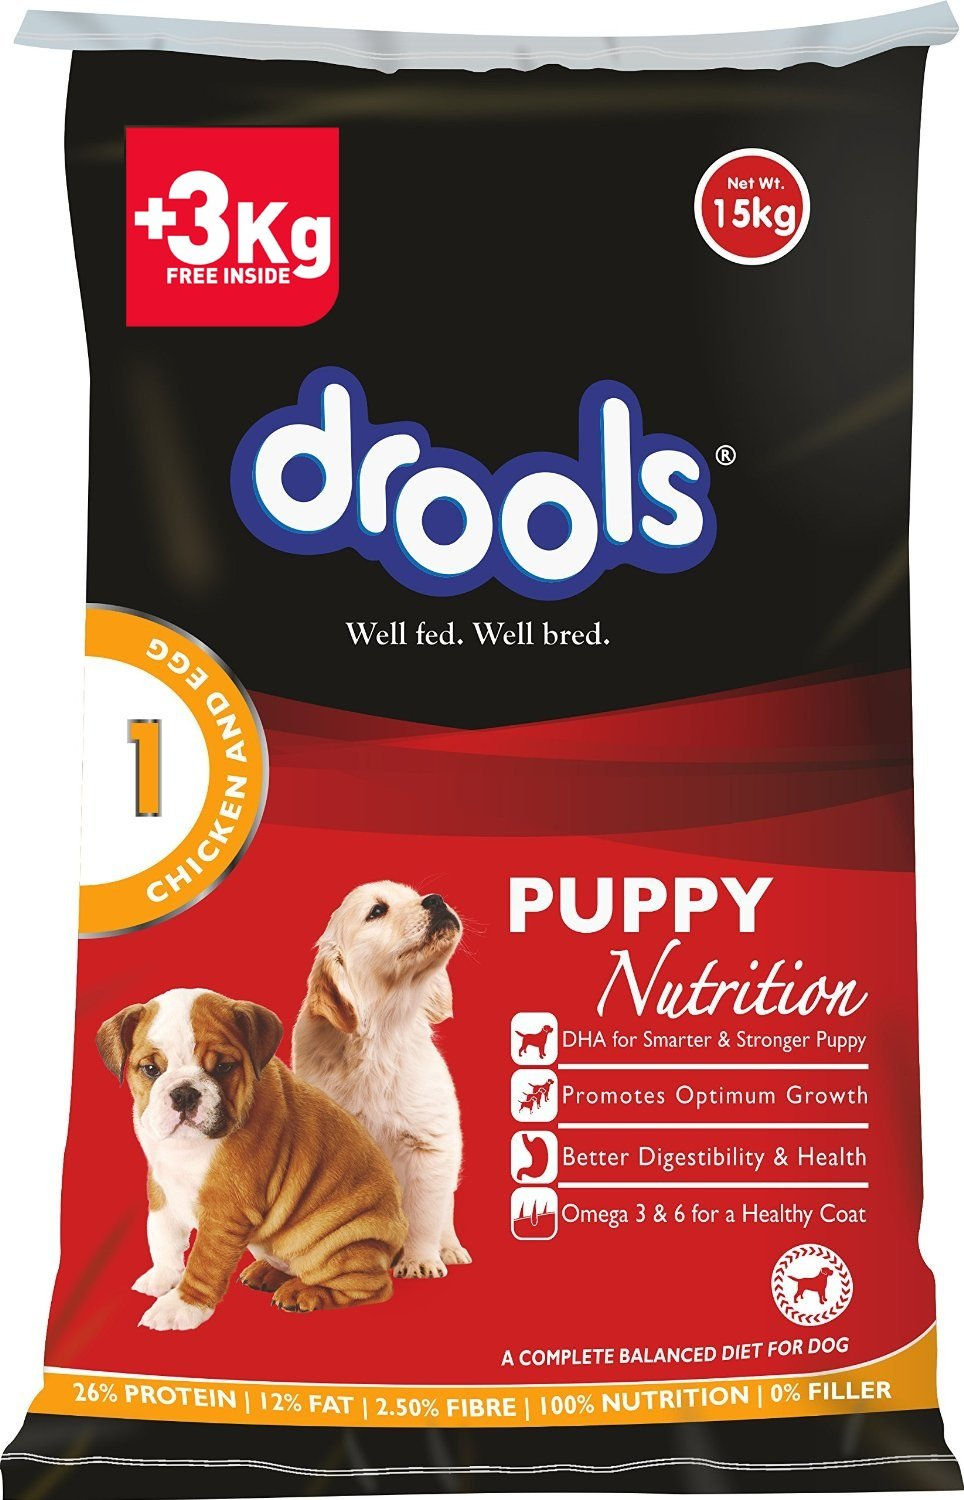 Drools Chicken and Egg Puppy - 15 kg (+ 3 kg inside FREE)